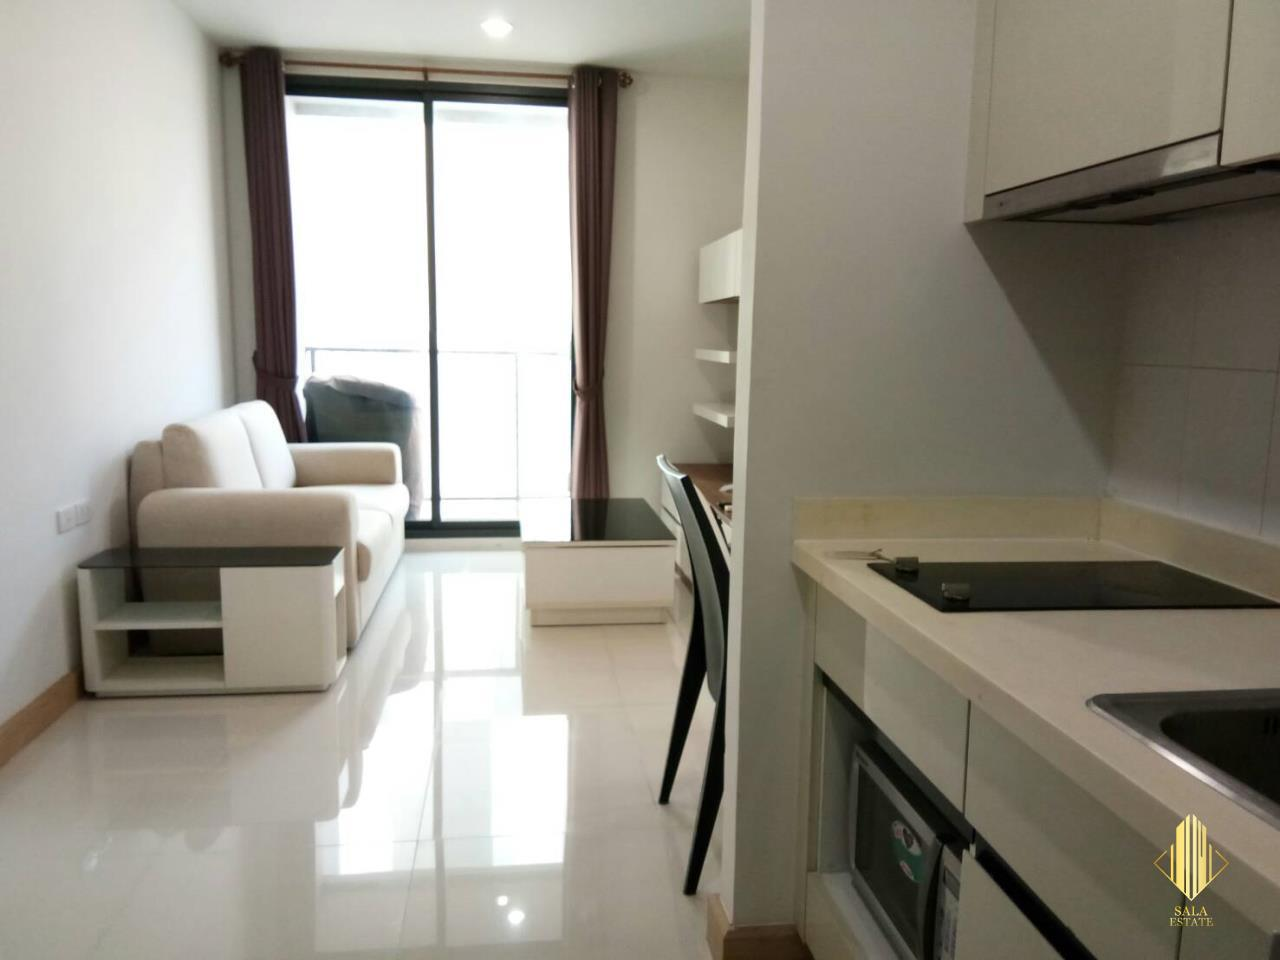 SALA ESTATE Agency's THE PRESIDENT SUKHUMWIT-BTS ONNUT 2 BEDROOM 1 BATHROOM FULLY FURNISHED 1